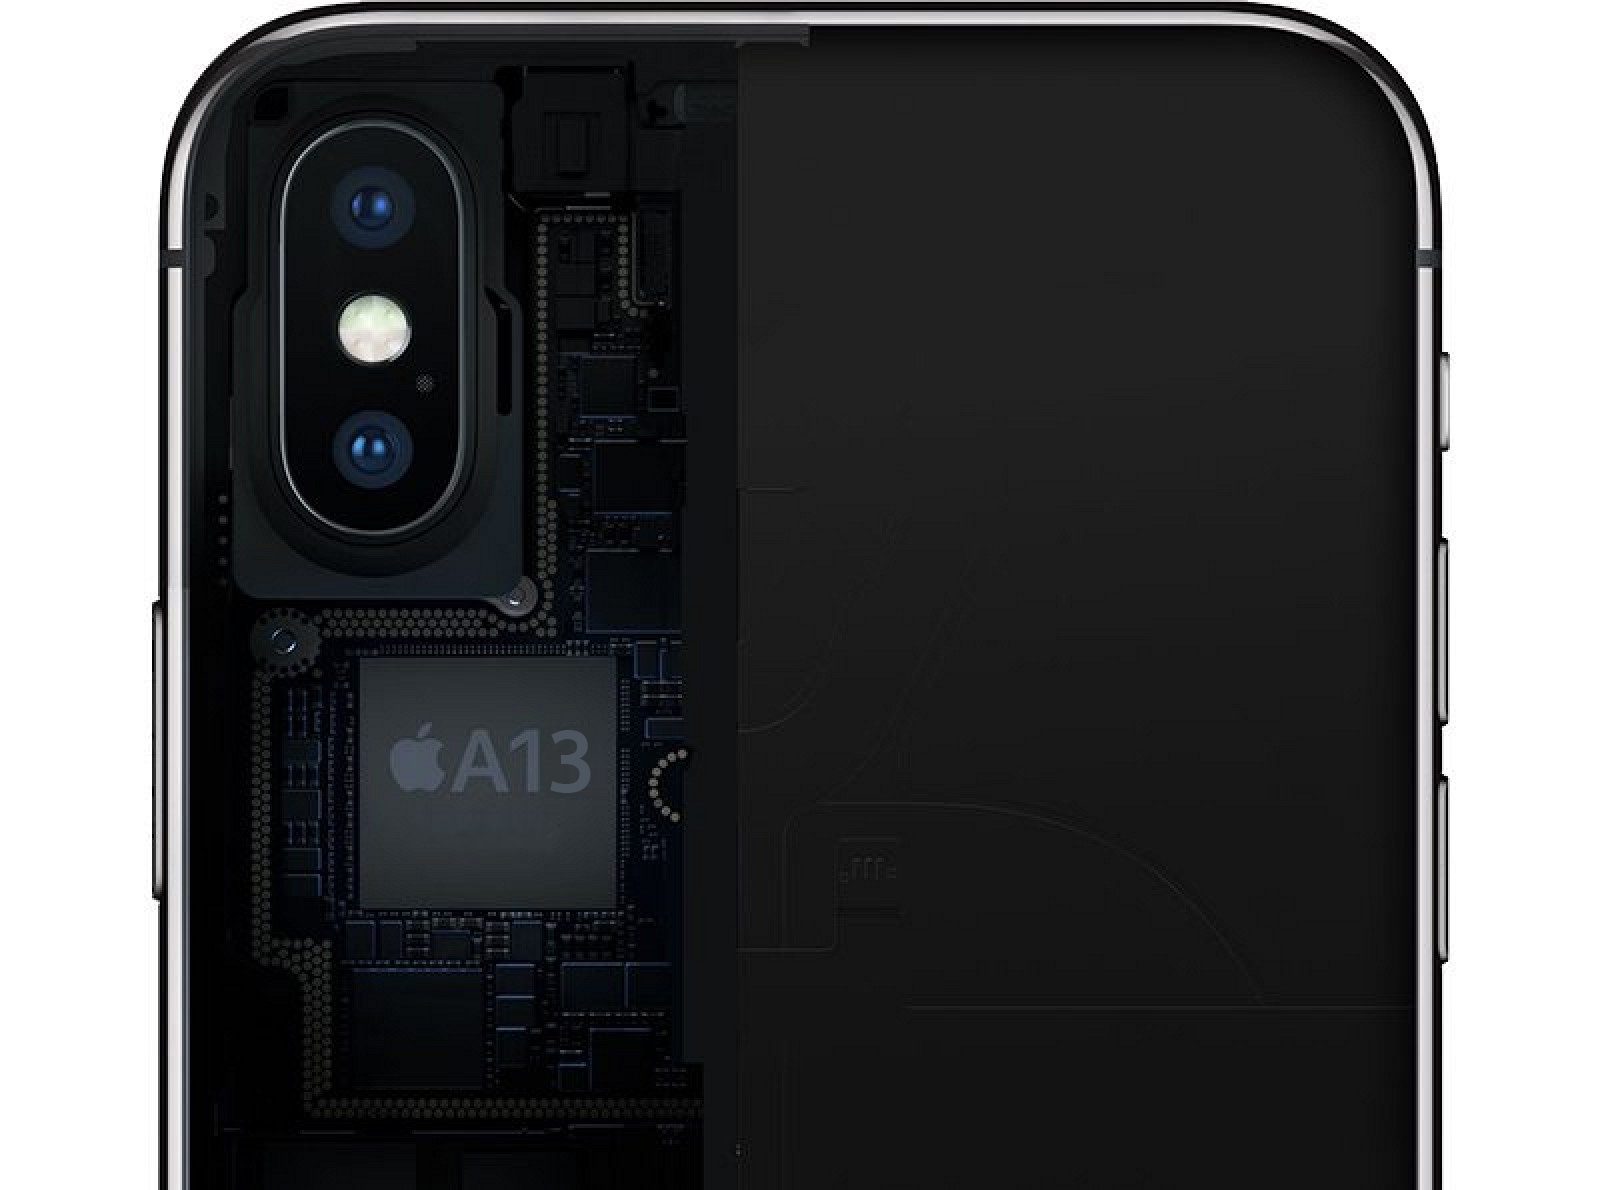 SoC A13 en un iPhone X